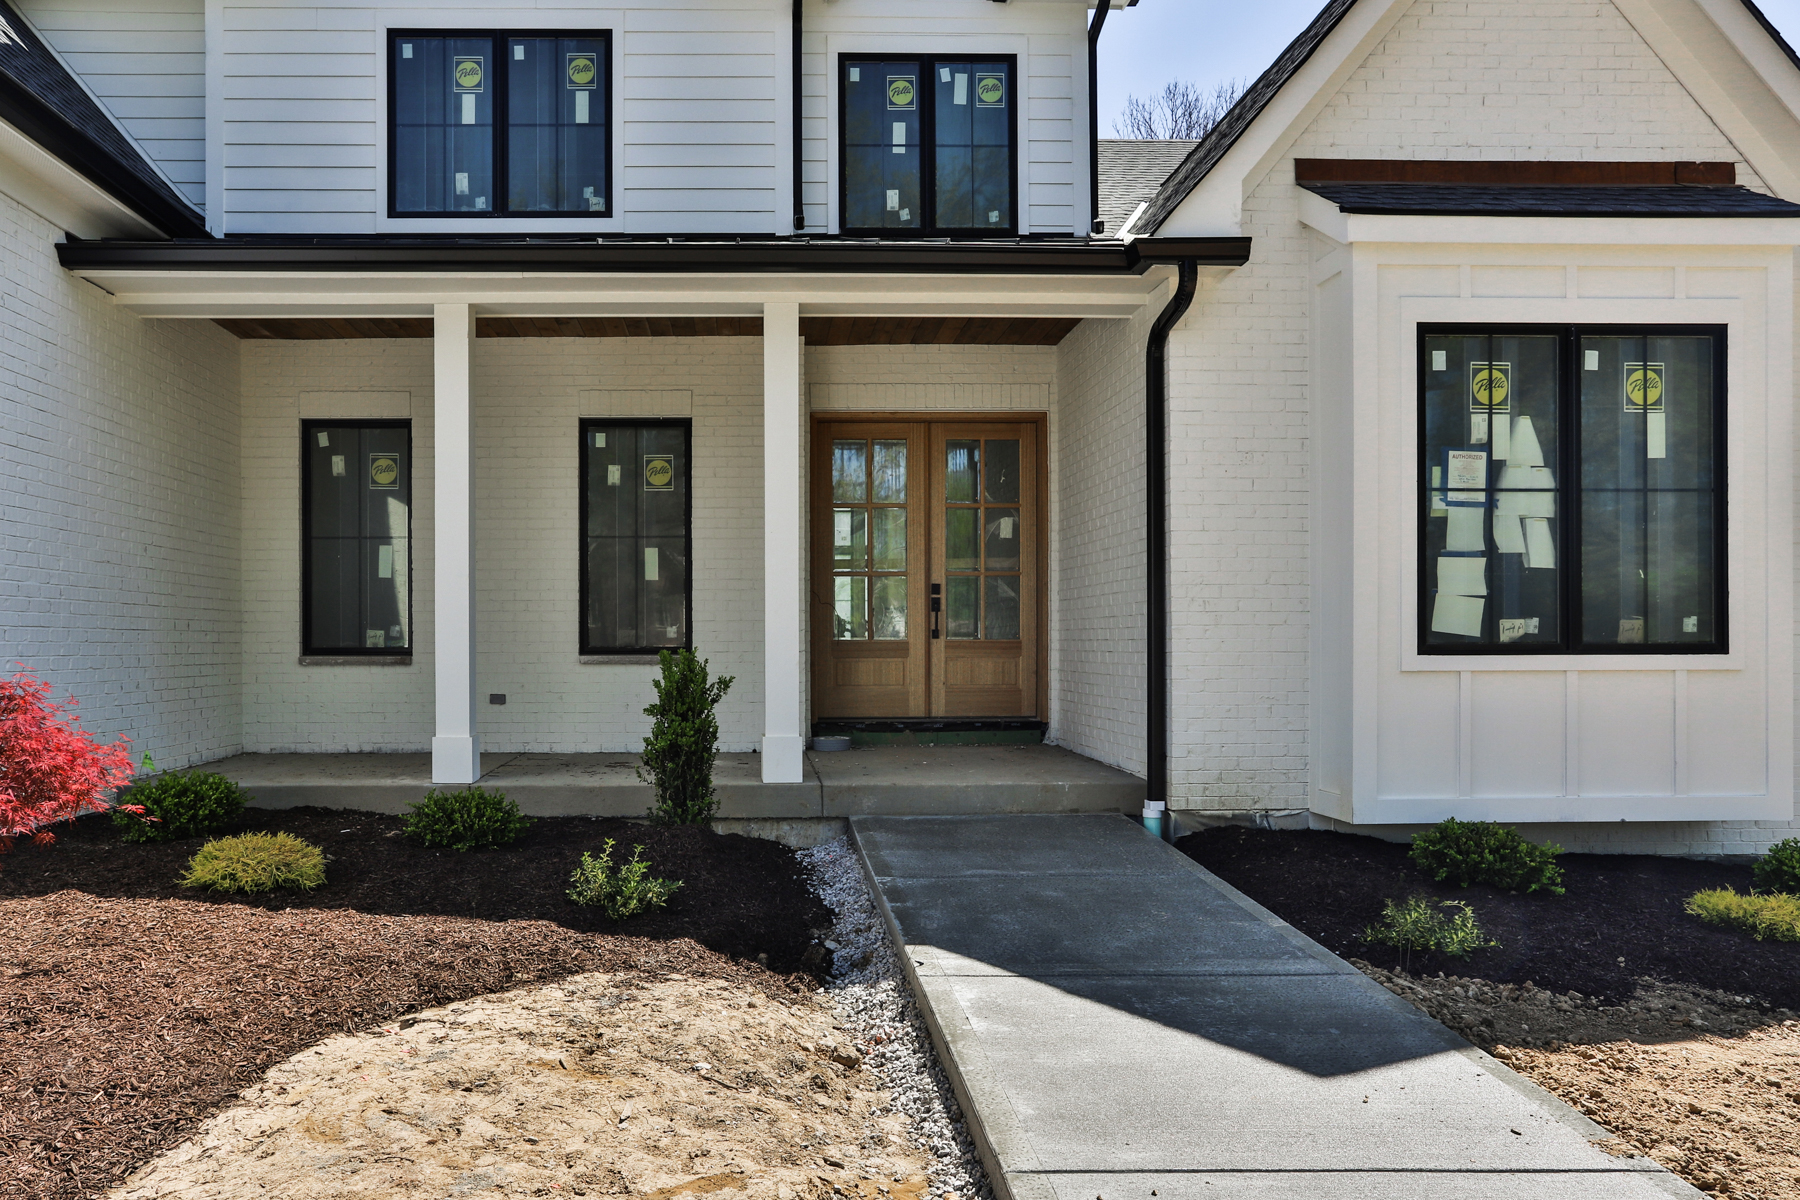 Additional photo for property listing at New Construction- Move-In Ready May 2020 48 Williamsburg Road Creve Coeur, Missouri 63141 United States